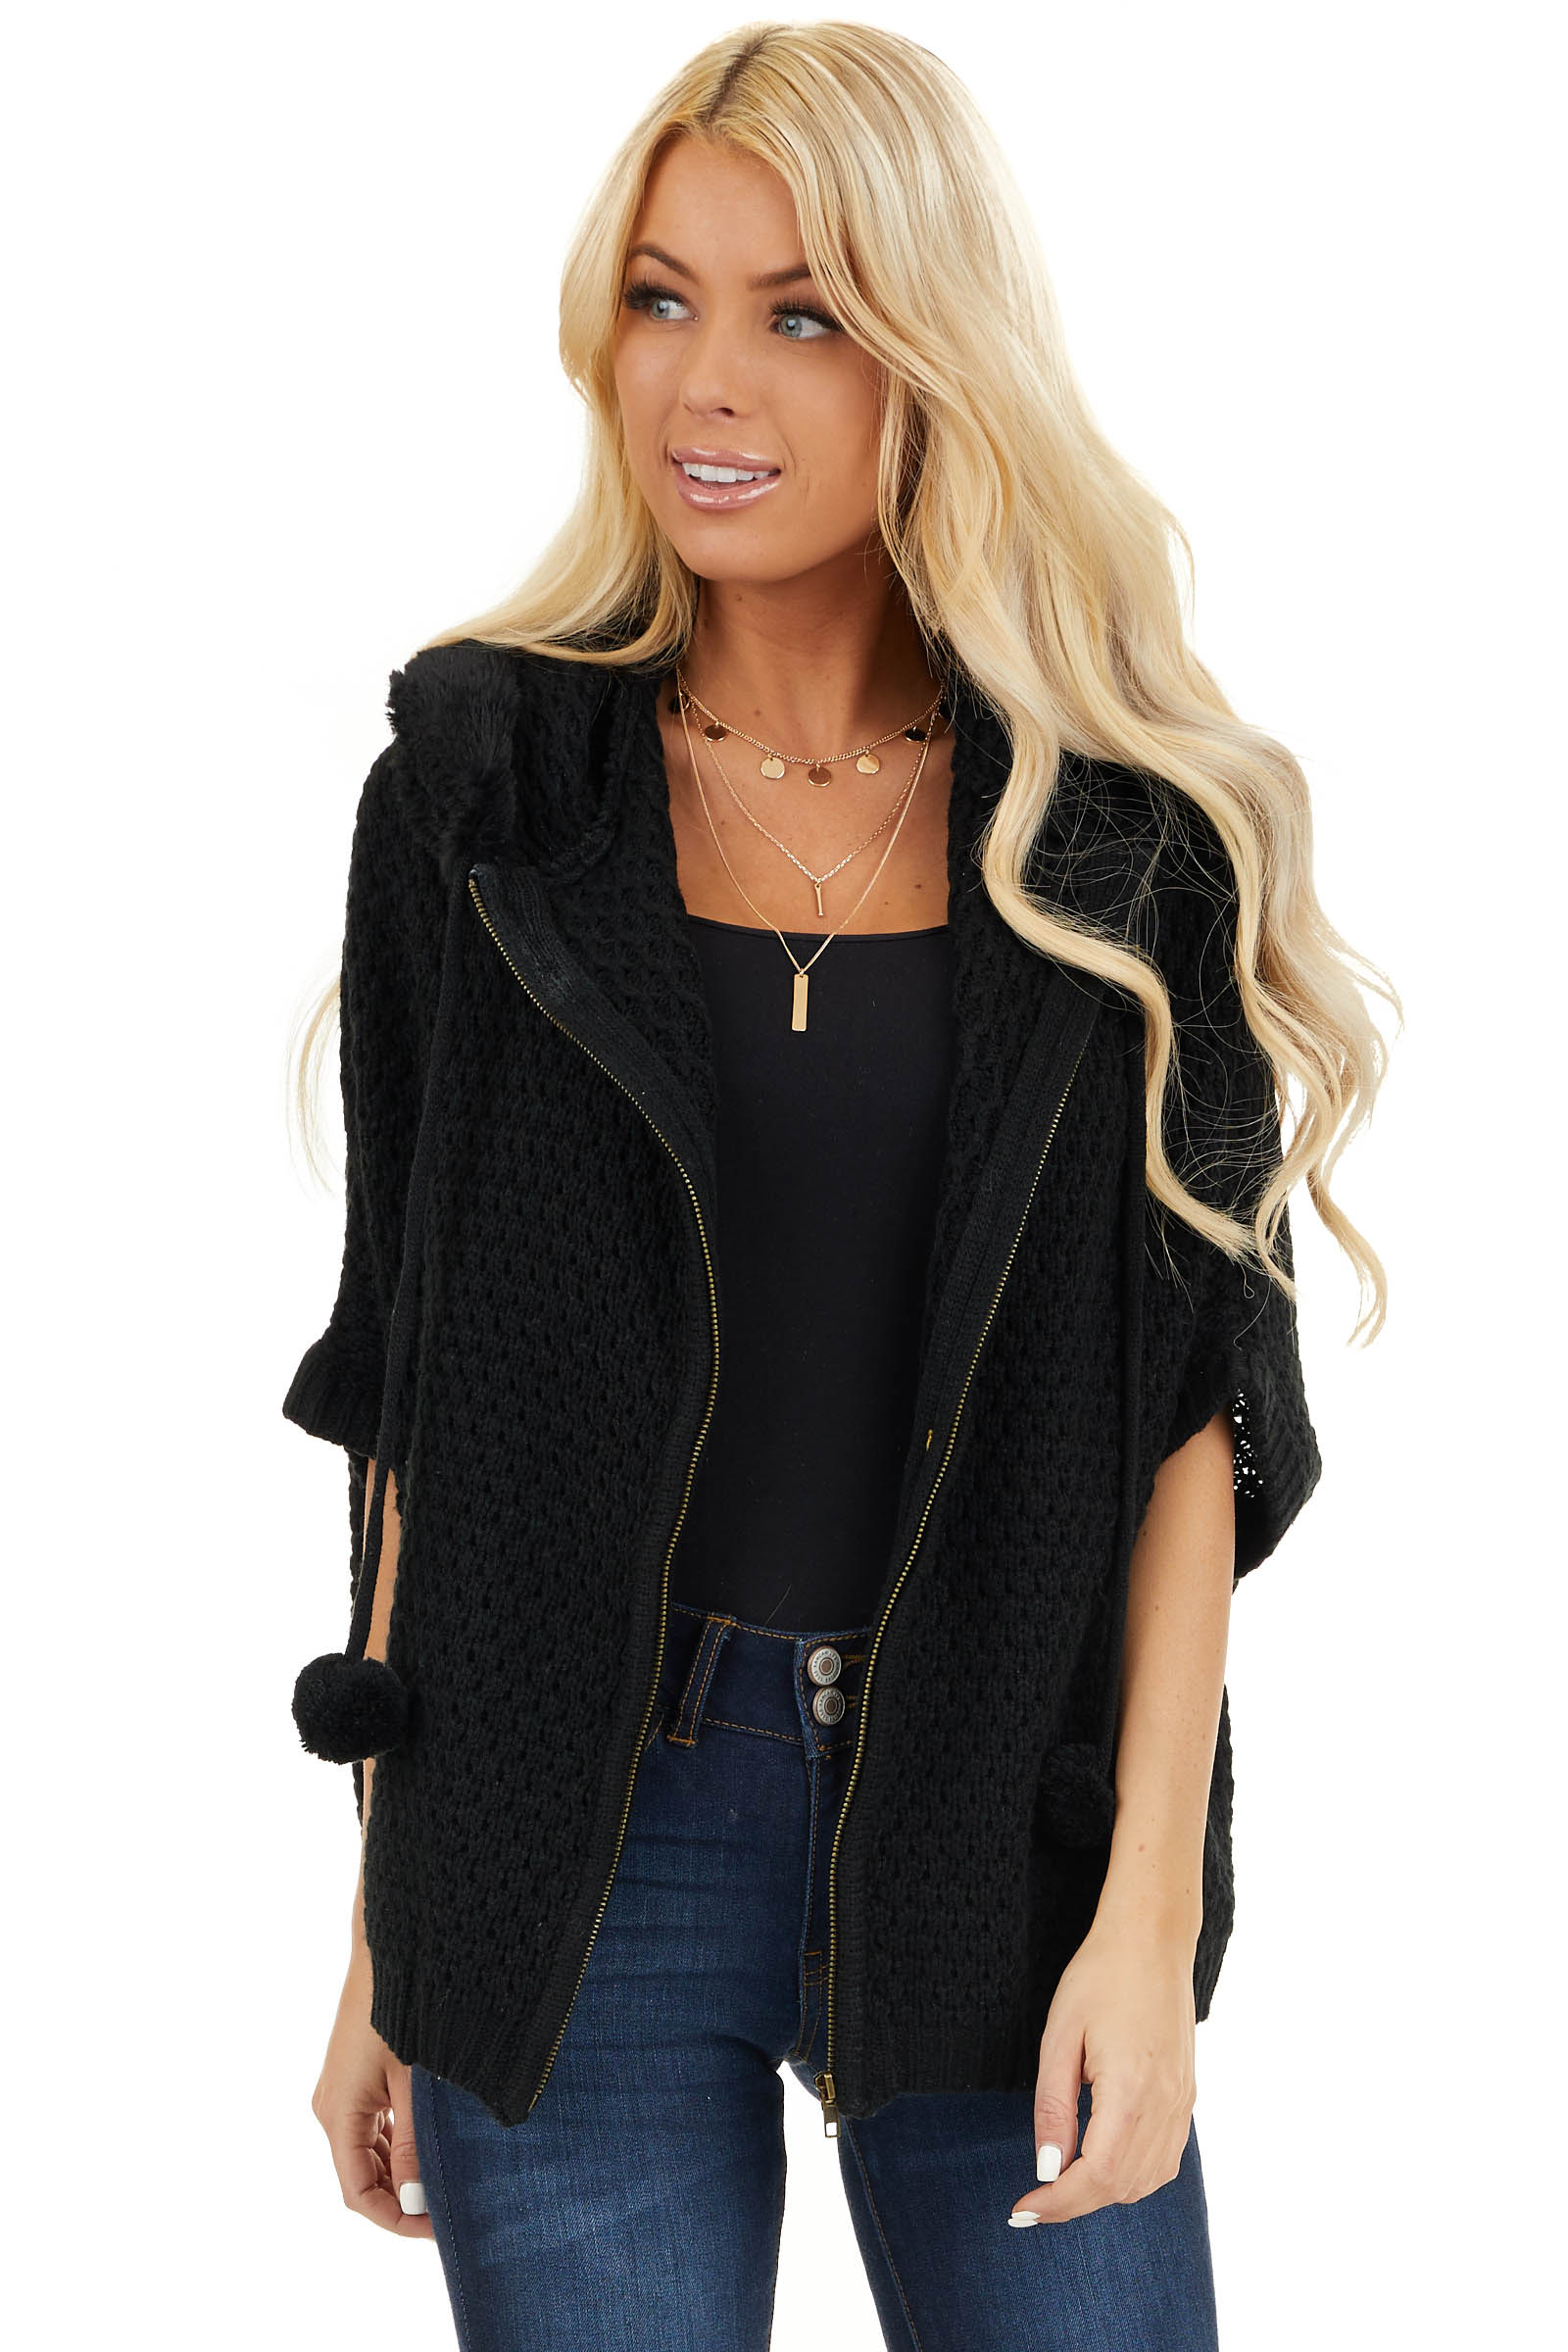 Black Short Sleeve Knit Jacket with Faux Fur Lined Hood front close up